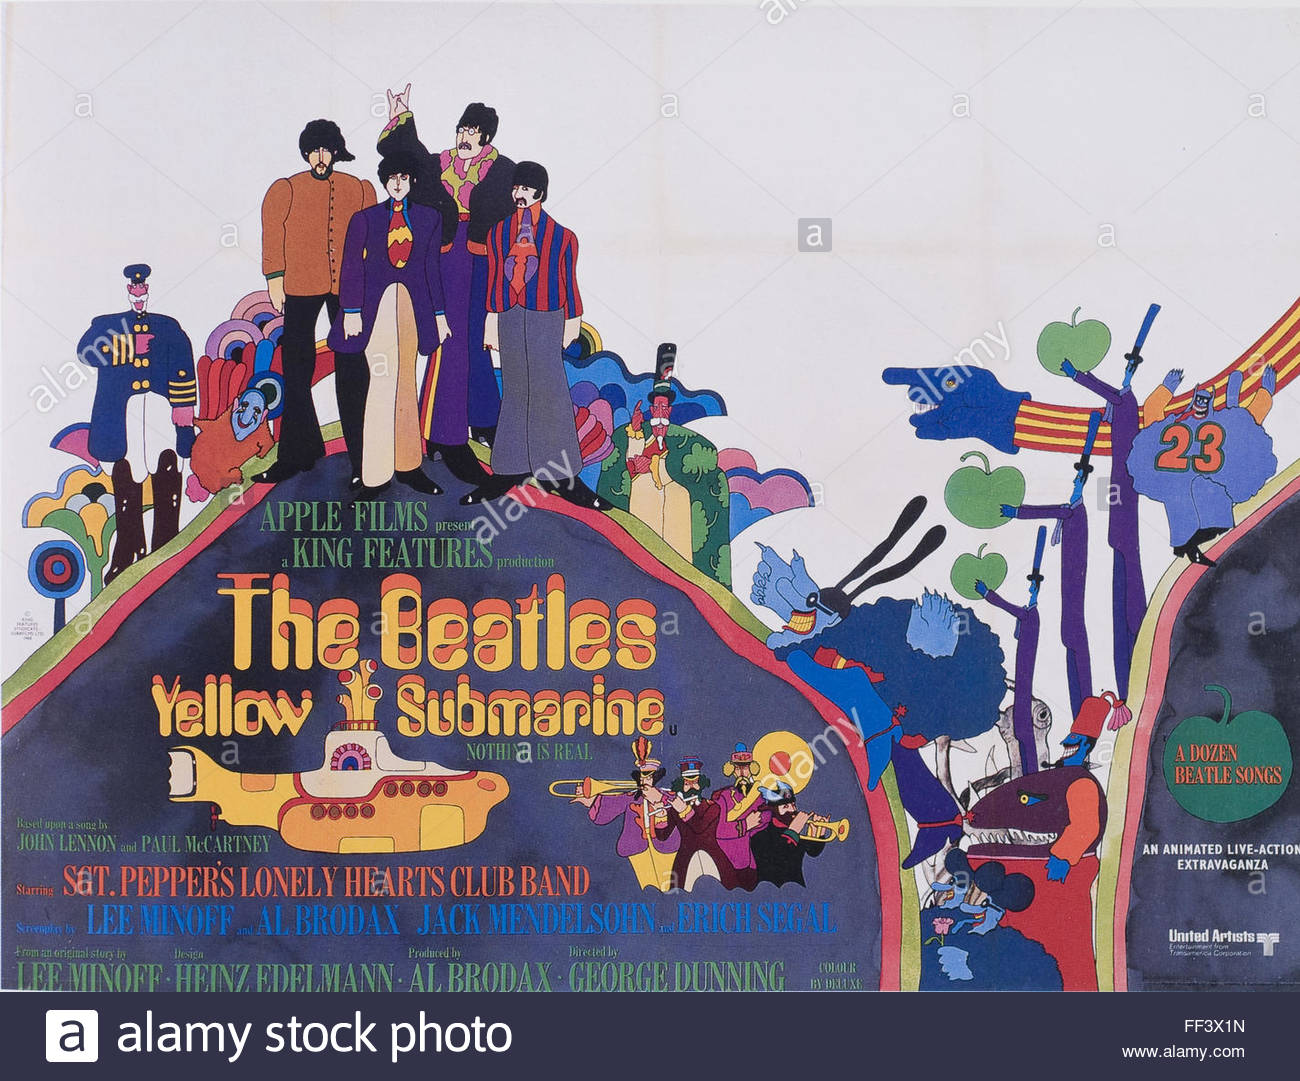 The Beatles - Yellow Submarine - póster de película Imagen De Stock